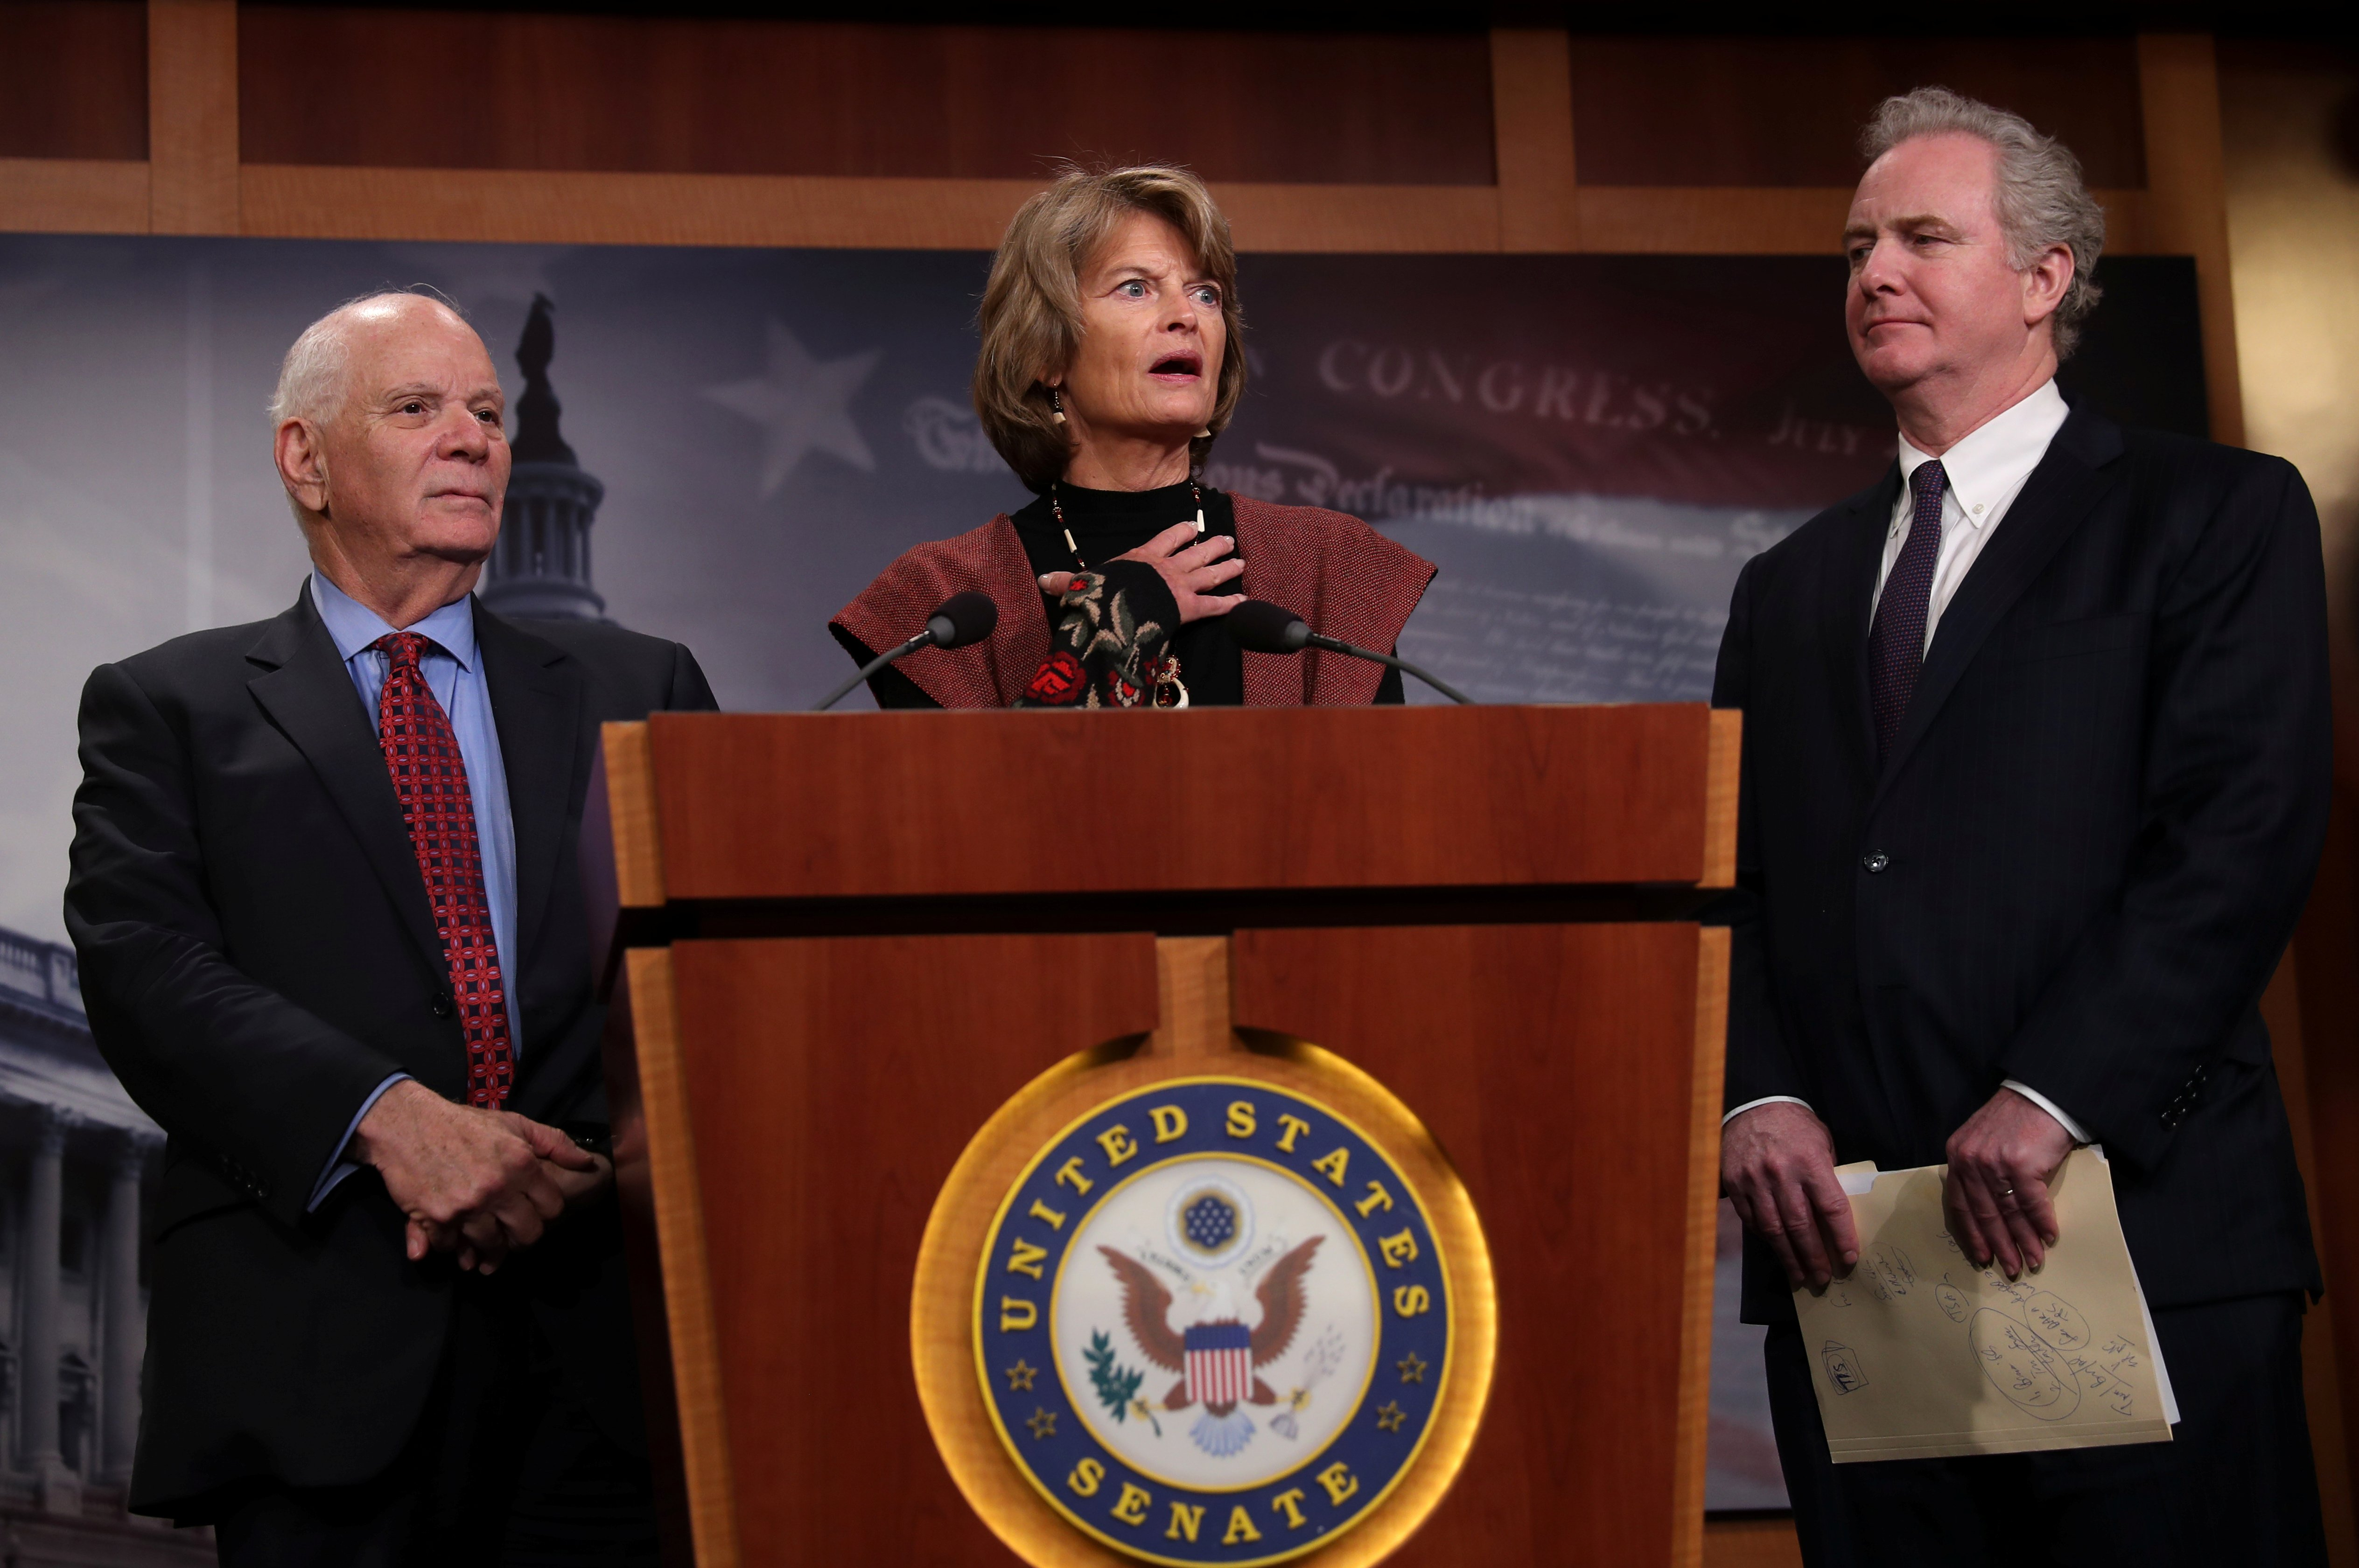 Sens. Ben Cardin (D-MD) (L), Lisa Murkowski (R-AK) (C) and Chris Van Hollen (D-MD) hold a press conference in Washington